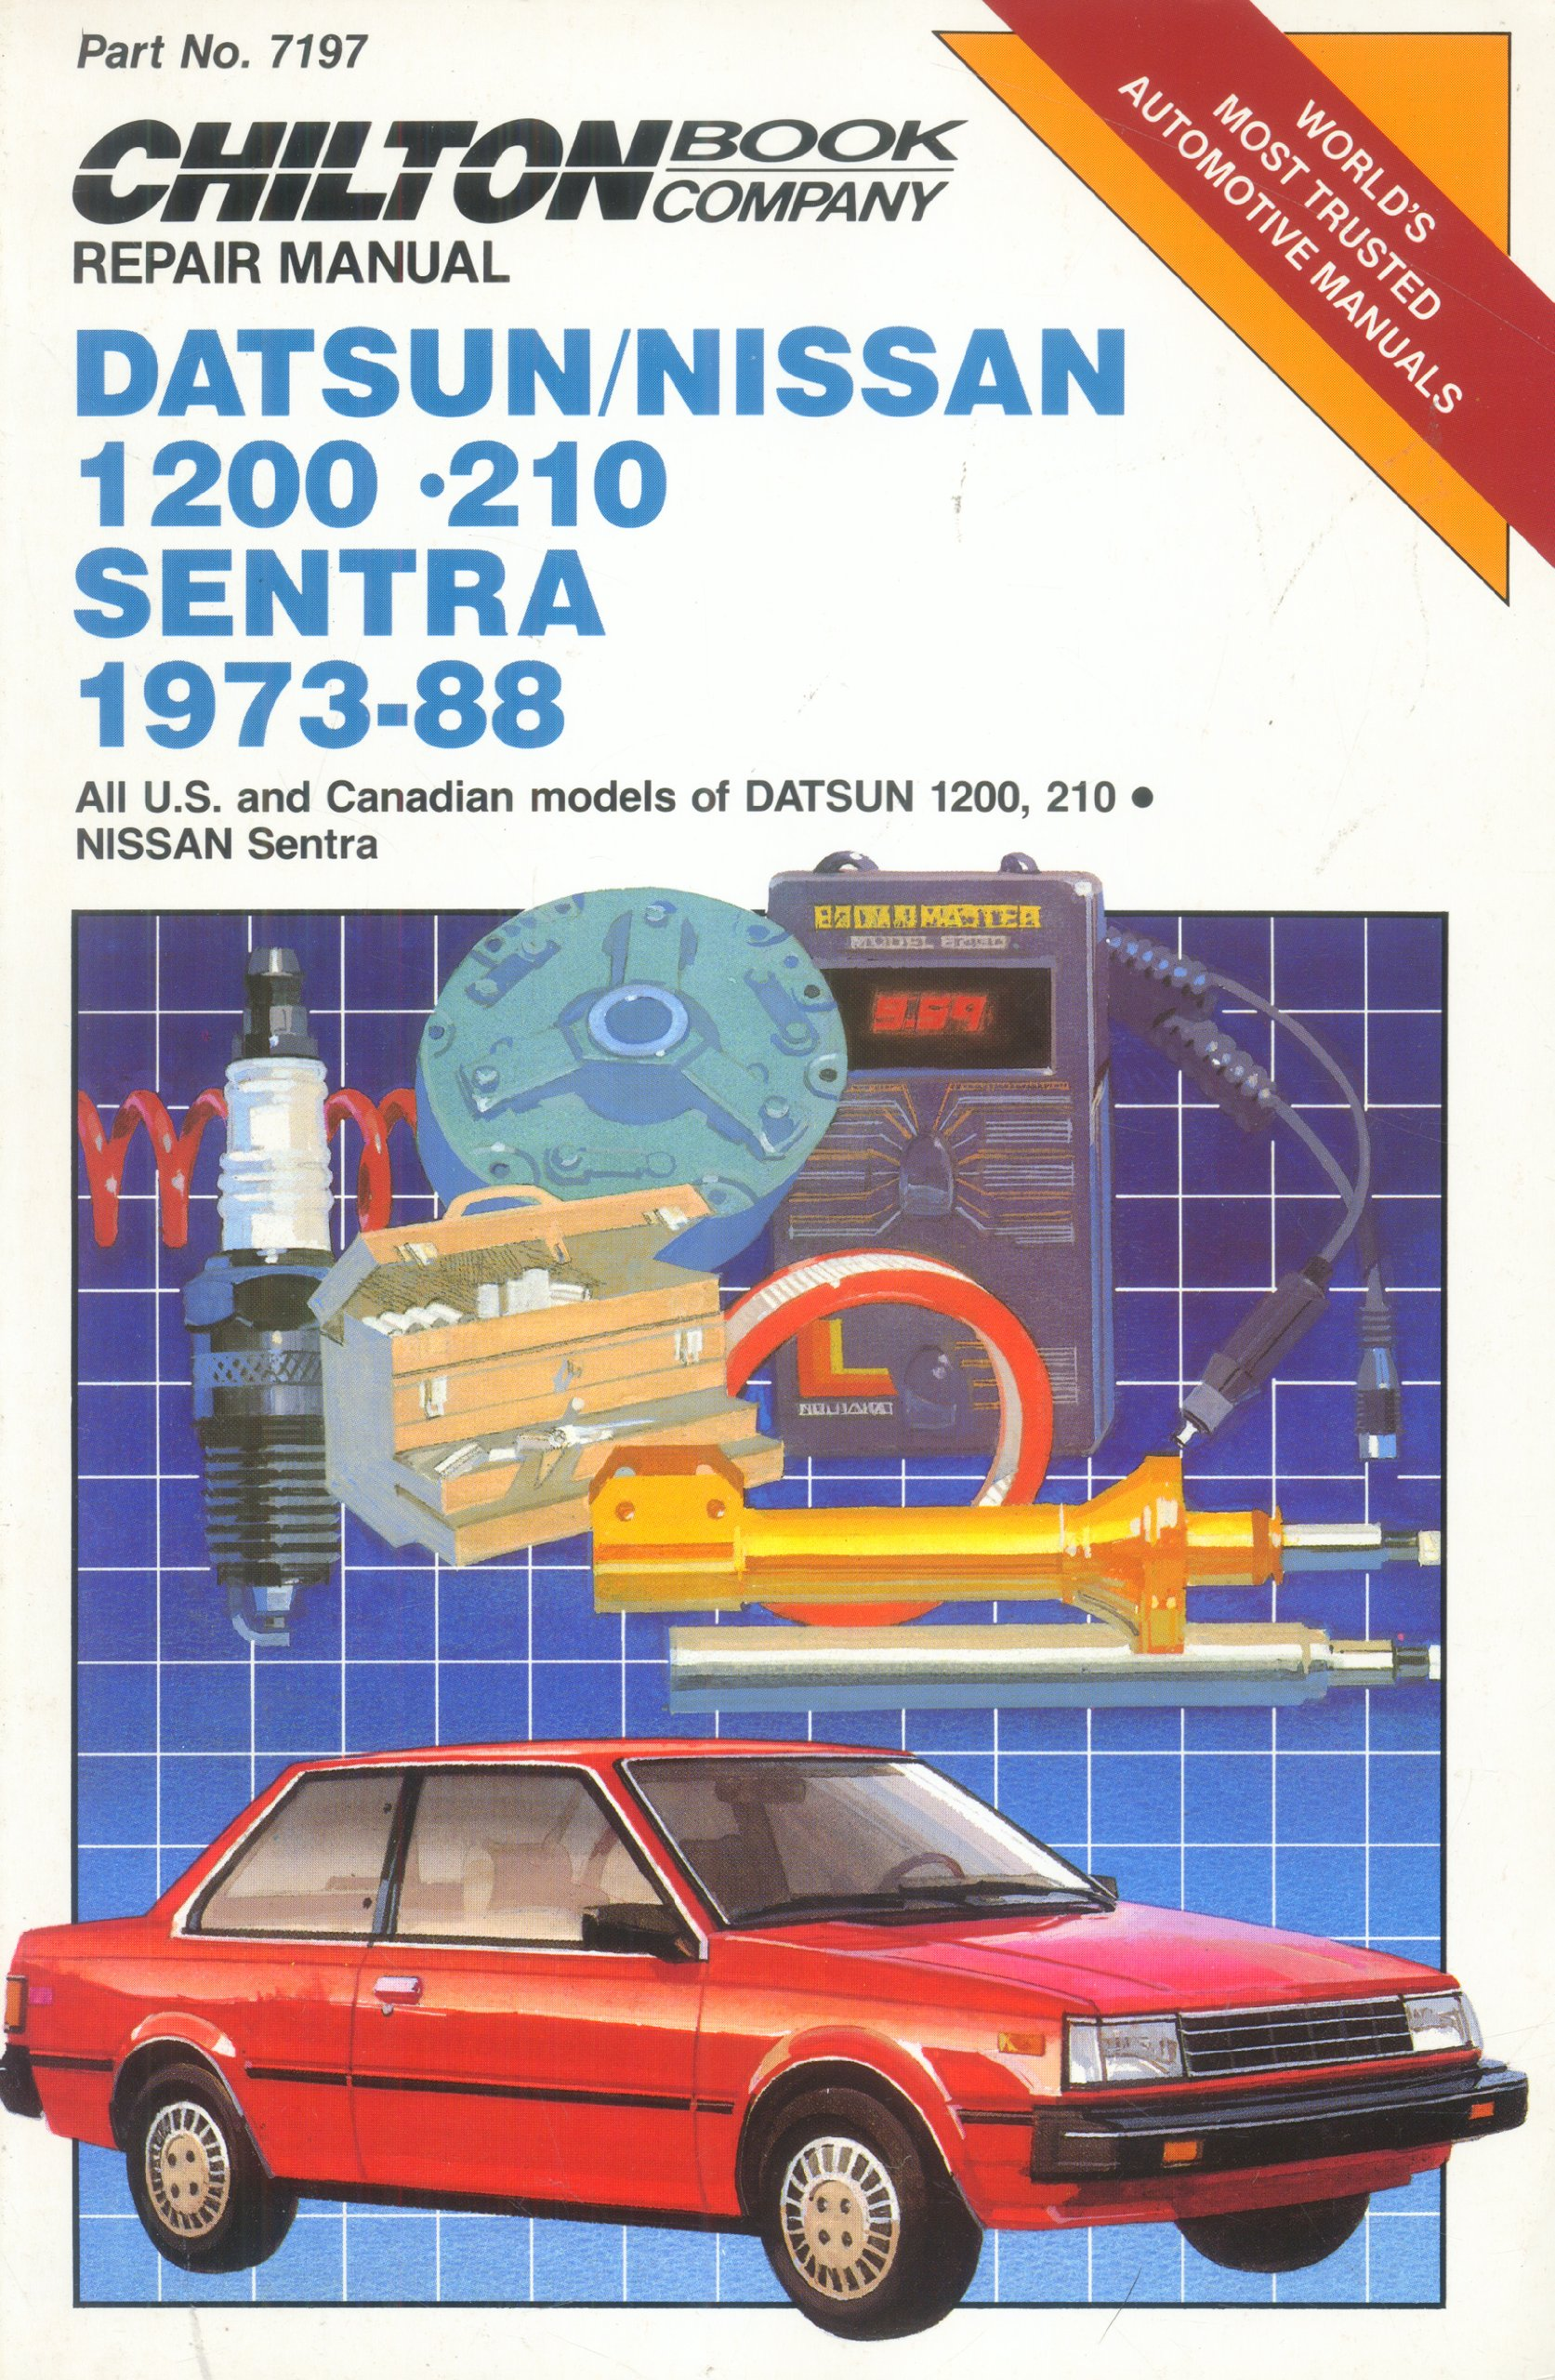 Chilton's Repair Manual Datsun/Nissan 1200-210 Sentra 1973-88: All U.S. and  Canadian Models of Datsun 1200, 210 Nissan Sentra: Chilton Automotive  Books: ...